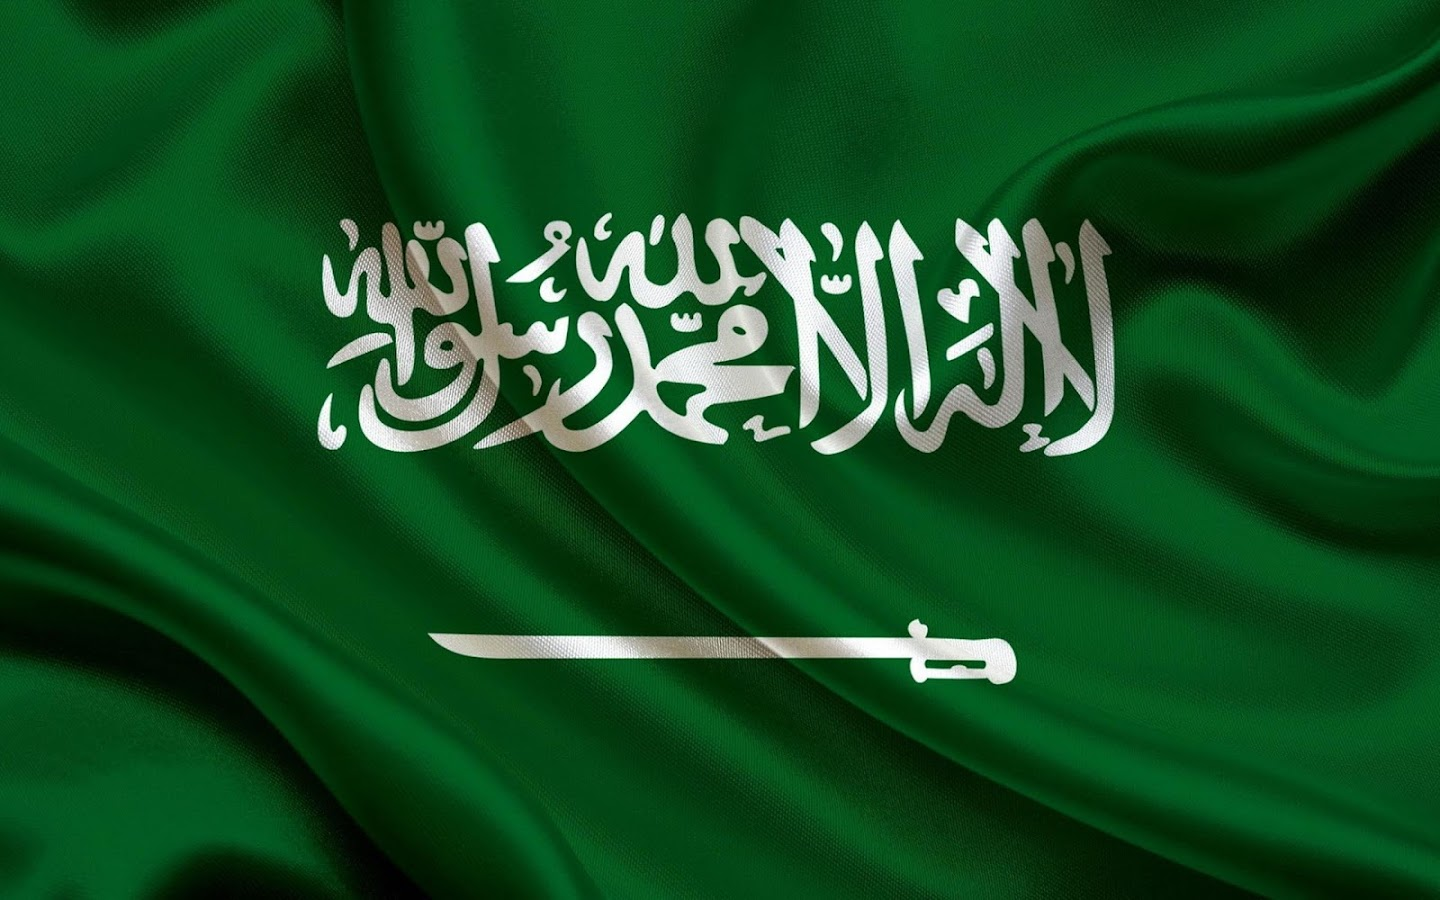 Saudi Arabia Flag Wallpapers  Android Apps on Google Play